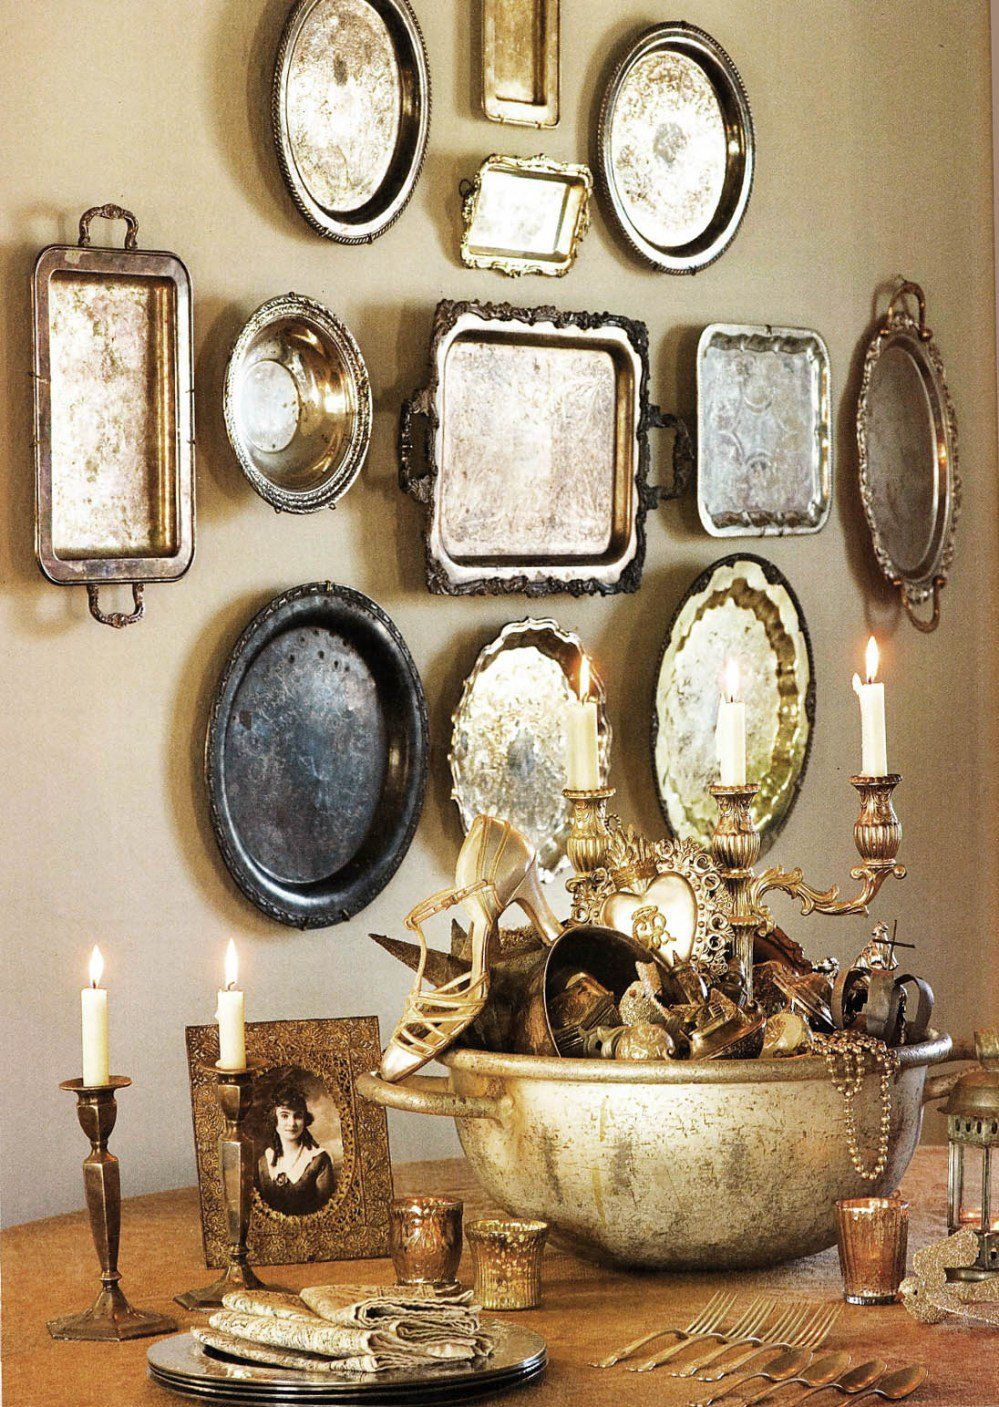 high quality vintage wall decor   dining room decor   trendy home